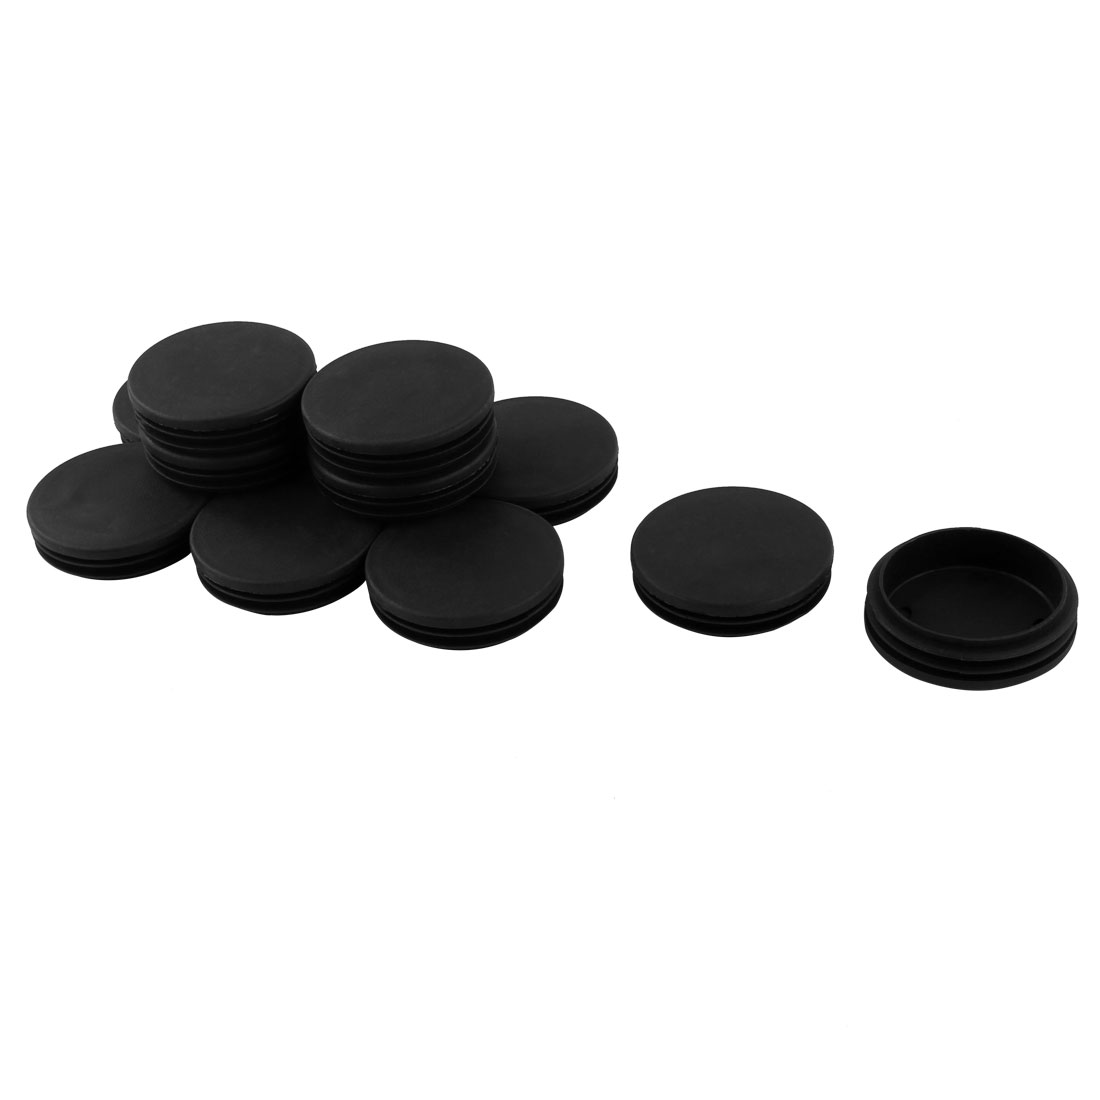 12 Pieces 70mm Diameter Black Plastic Blanking End Cap Round Tubing Tube Inserts